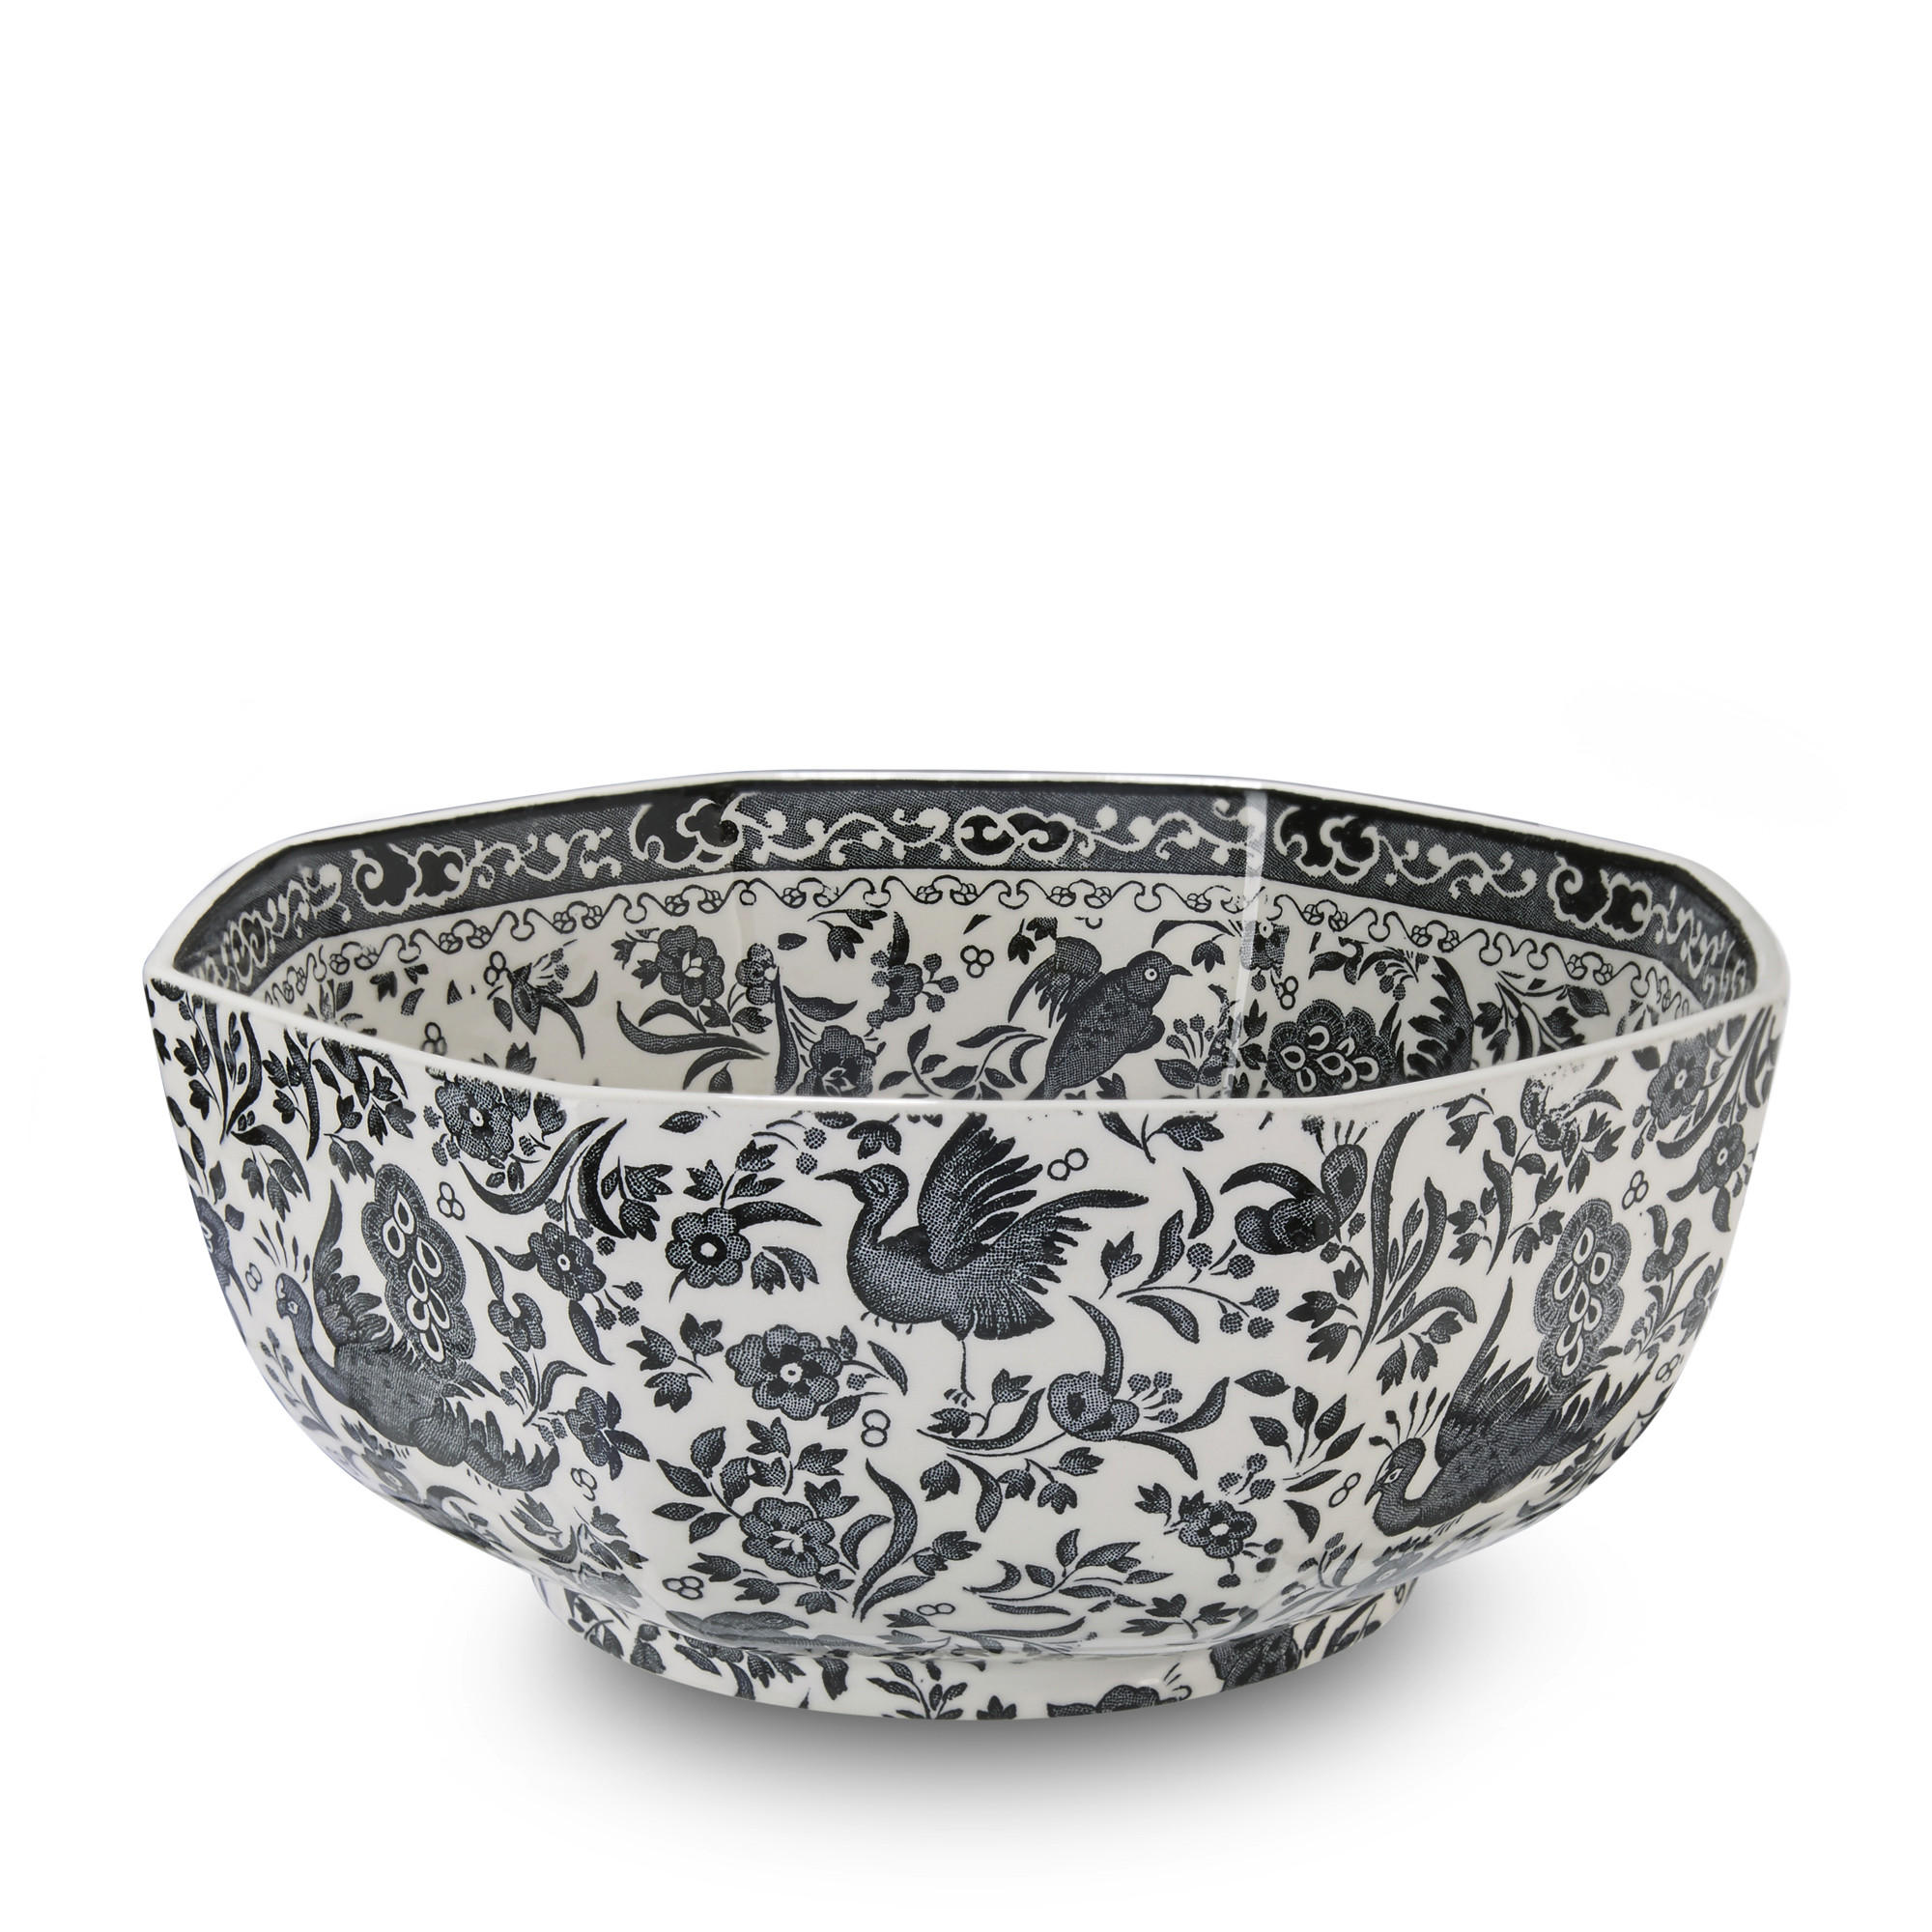 Black Regal Peacock Hexagonal Bowl Medium